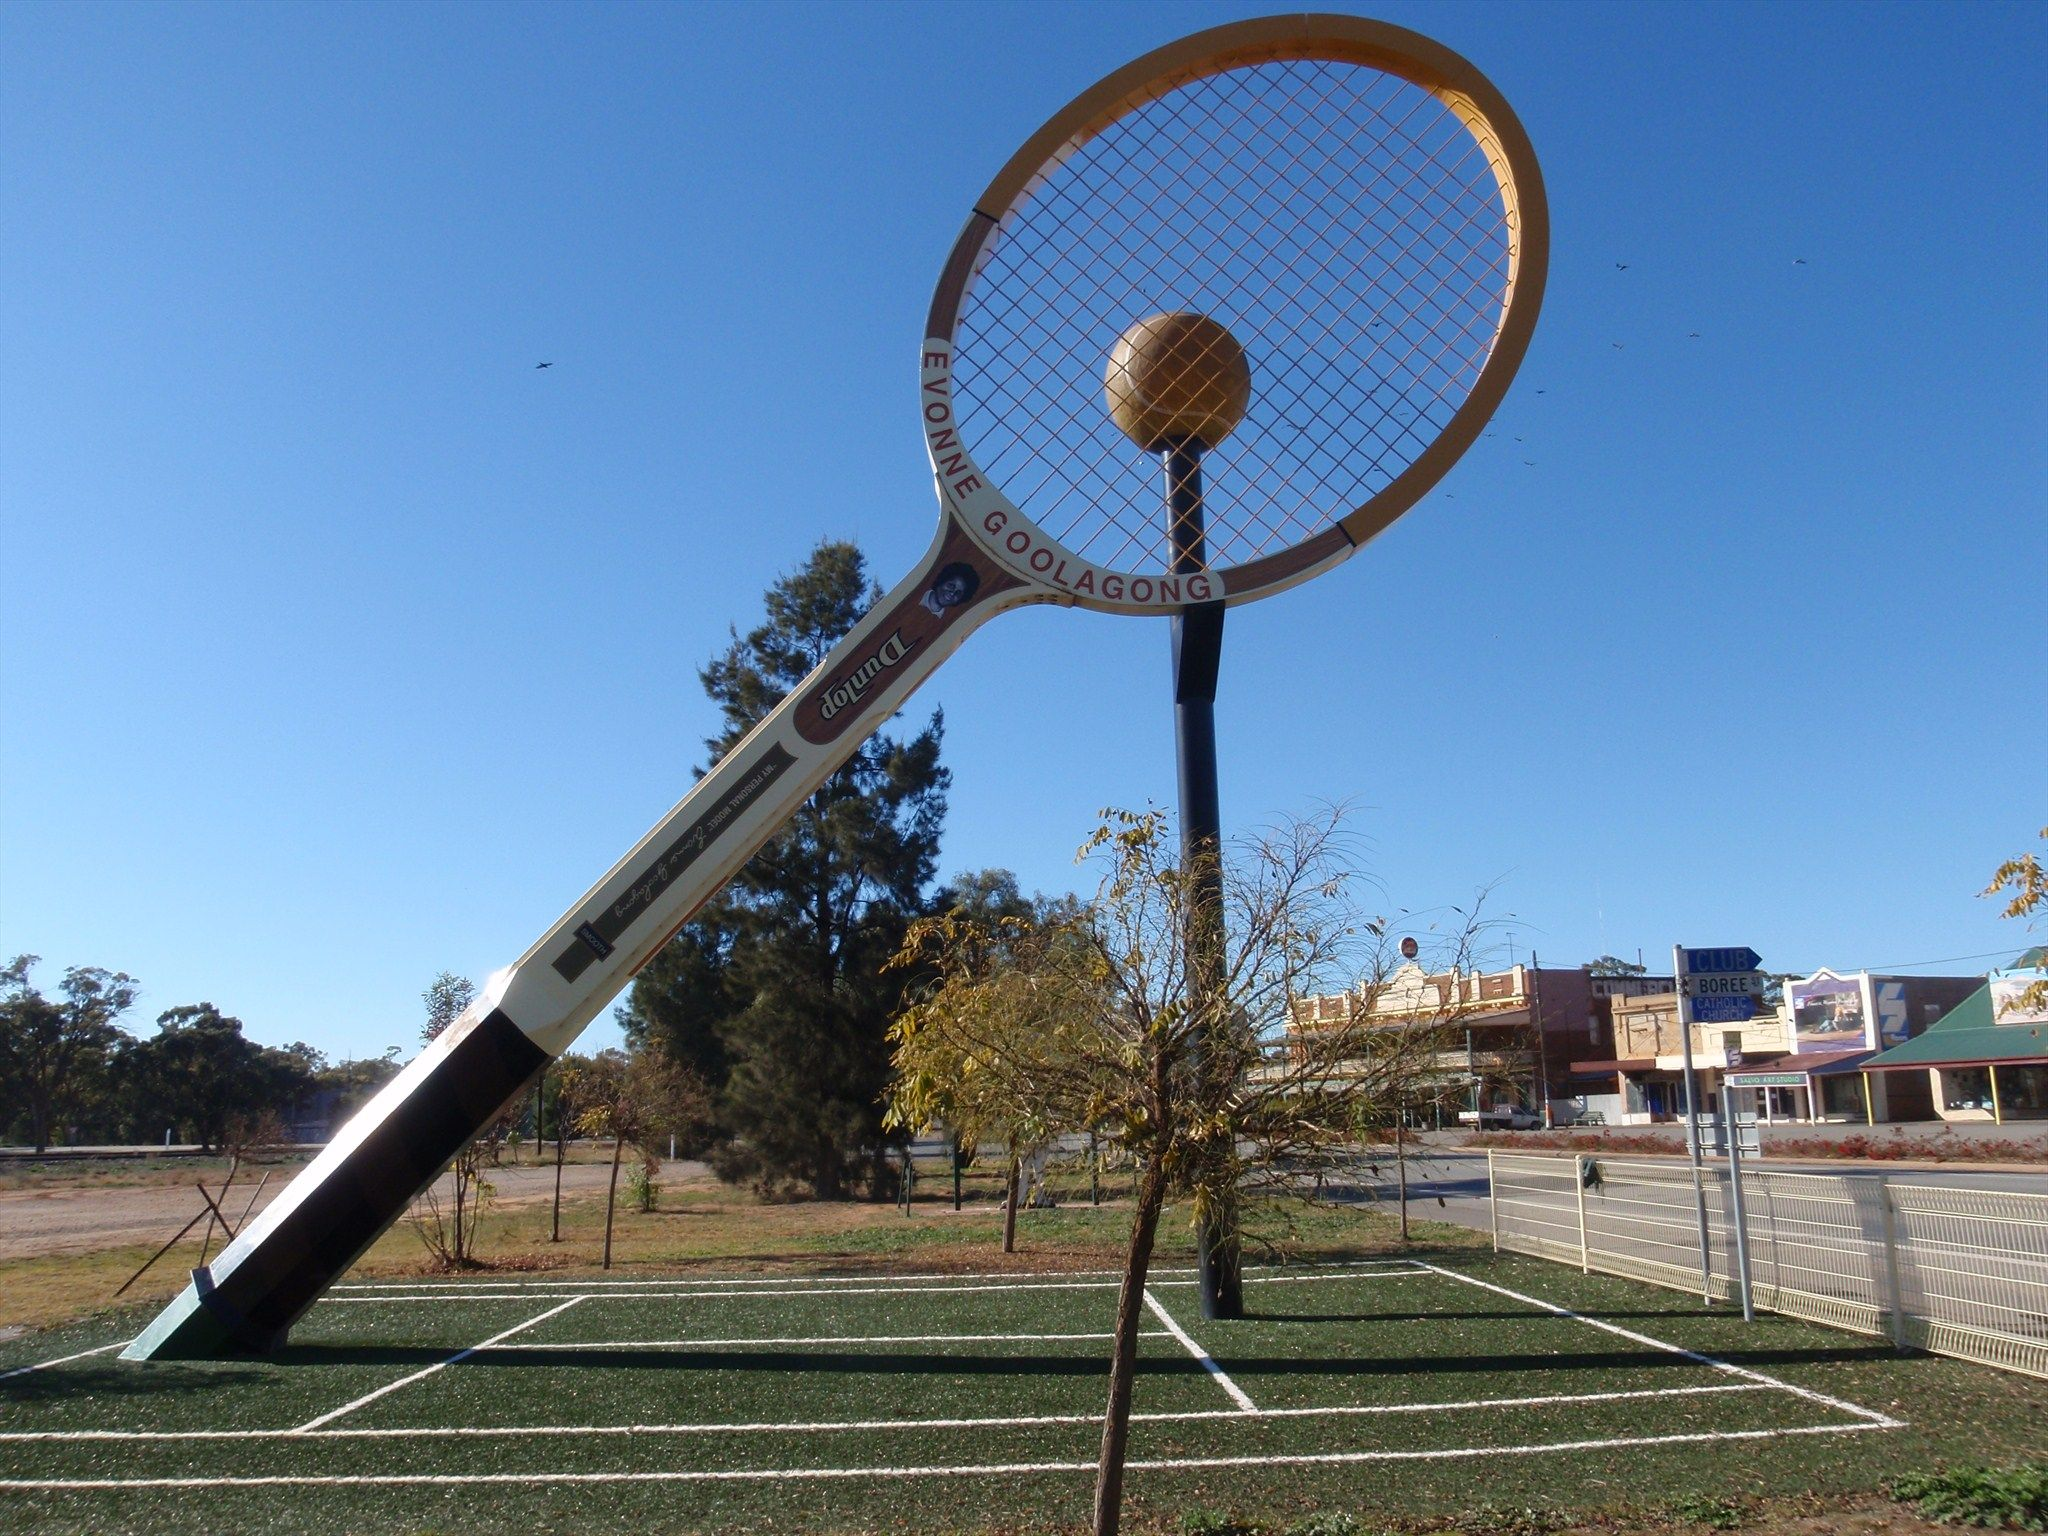 Giant Tennis Racquet Barellan Nsw Aus With Images New South Wales Roadside Attractions Australia